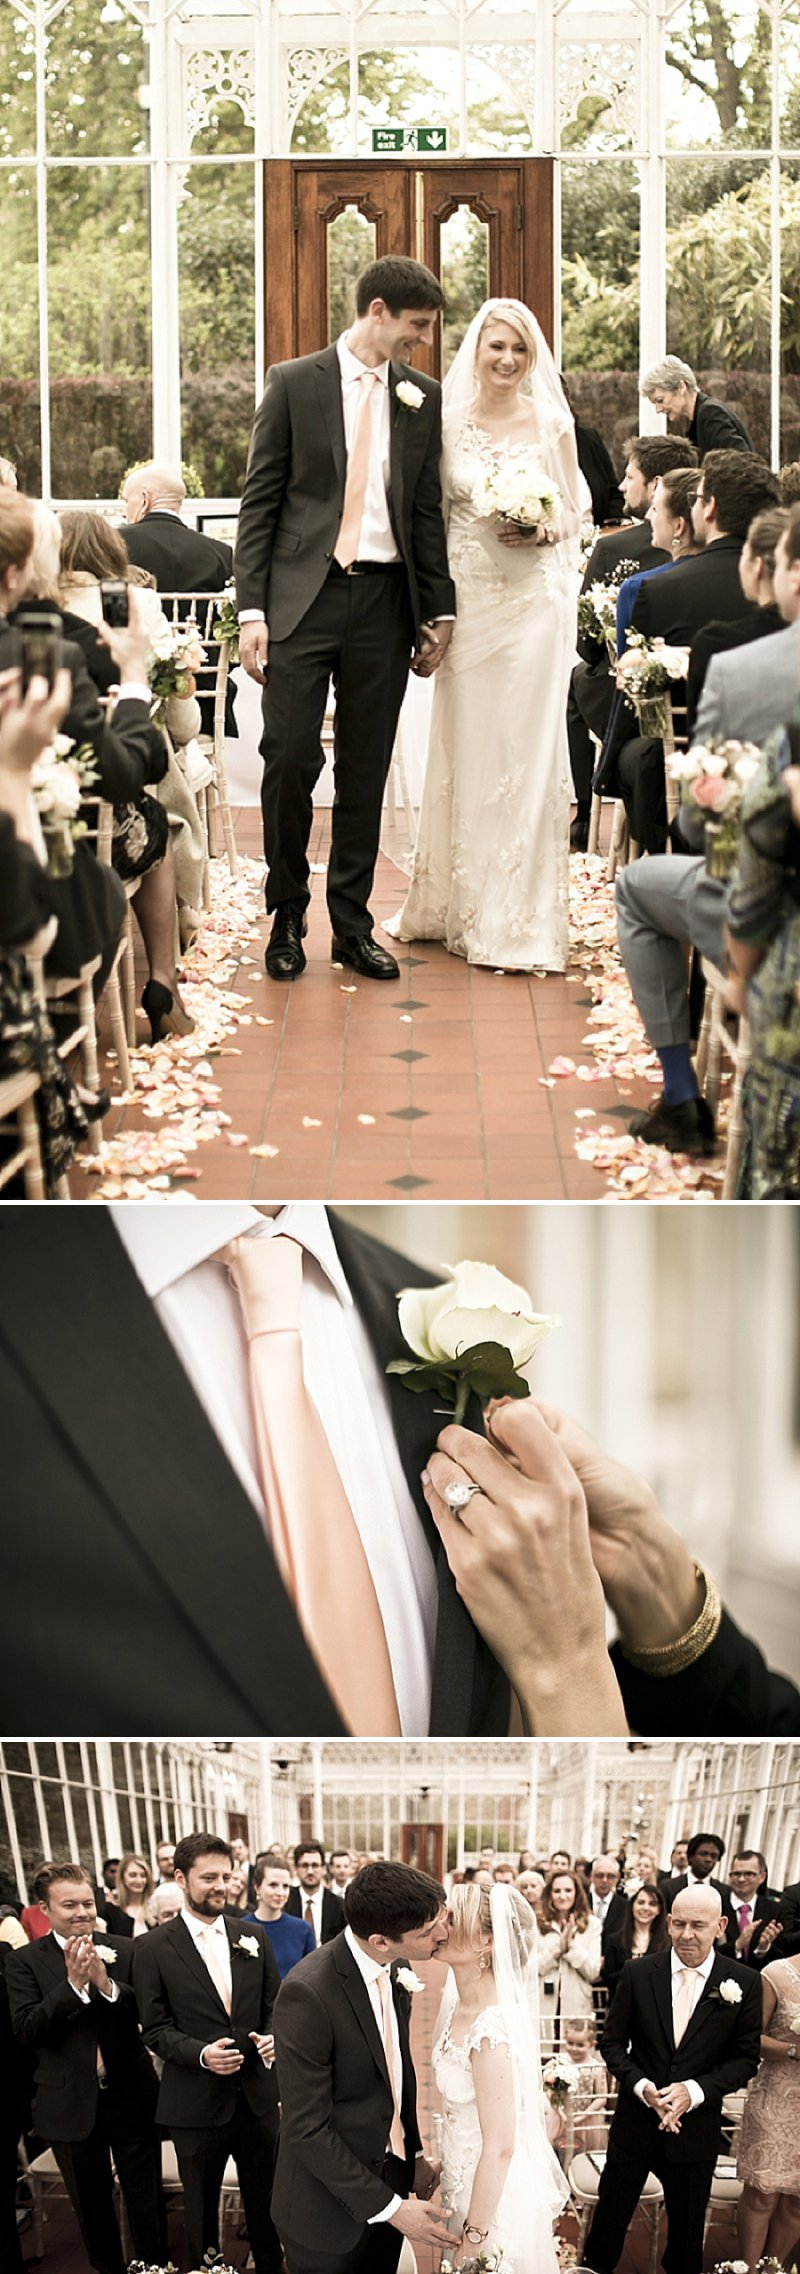 Laid Back London Wedding At The Horniman Museum With A Peach And Rose Gold Colour Scheme With Bride In Adagio By Claire Pettibone With Bridesmaids In Nude Dresses From Miss Selfridge 5